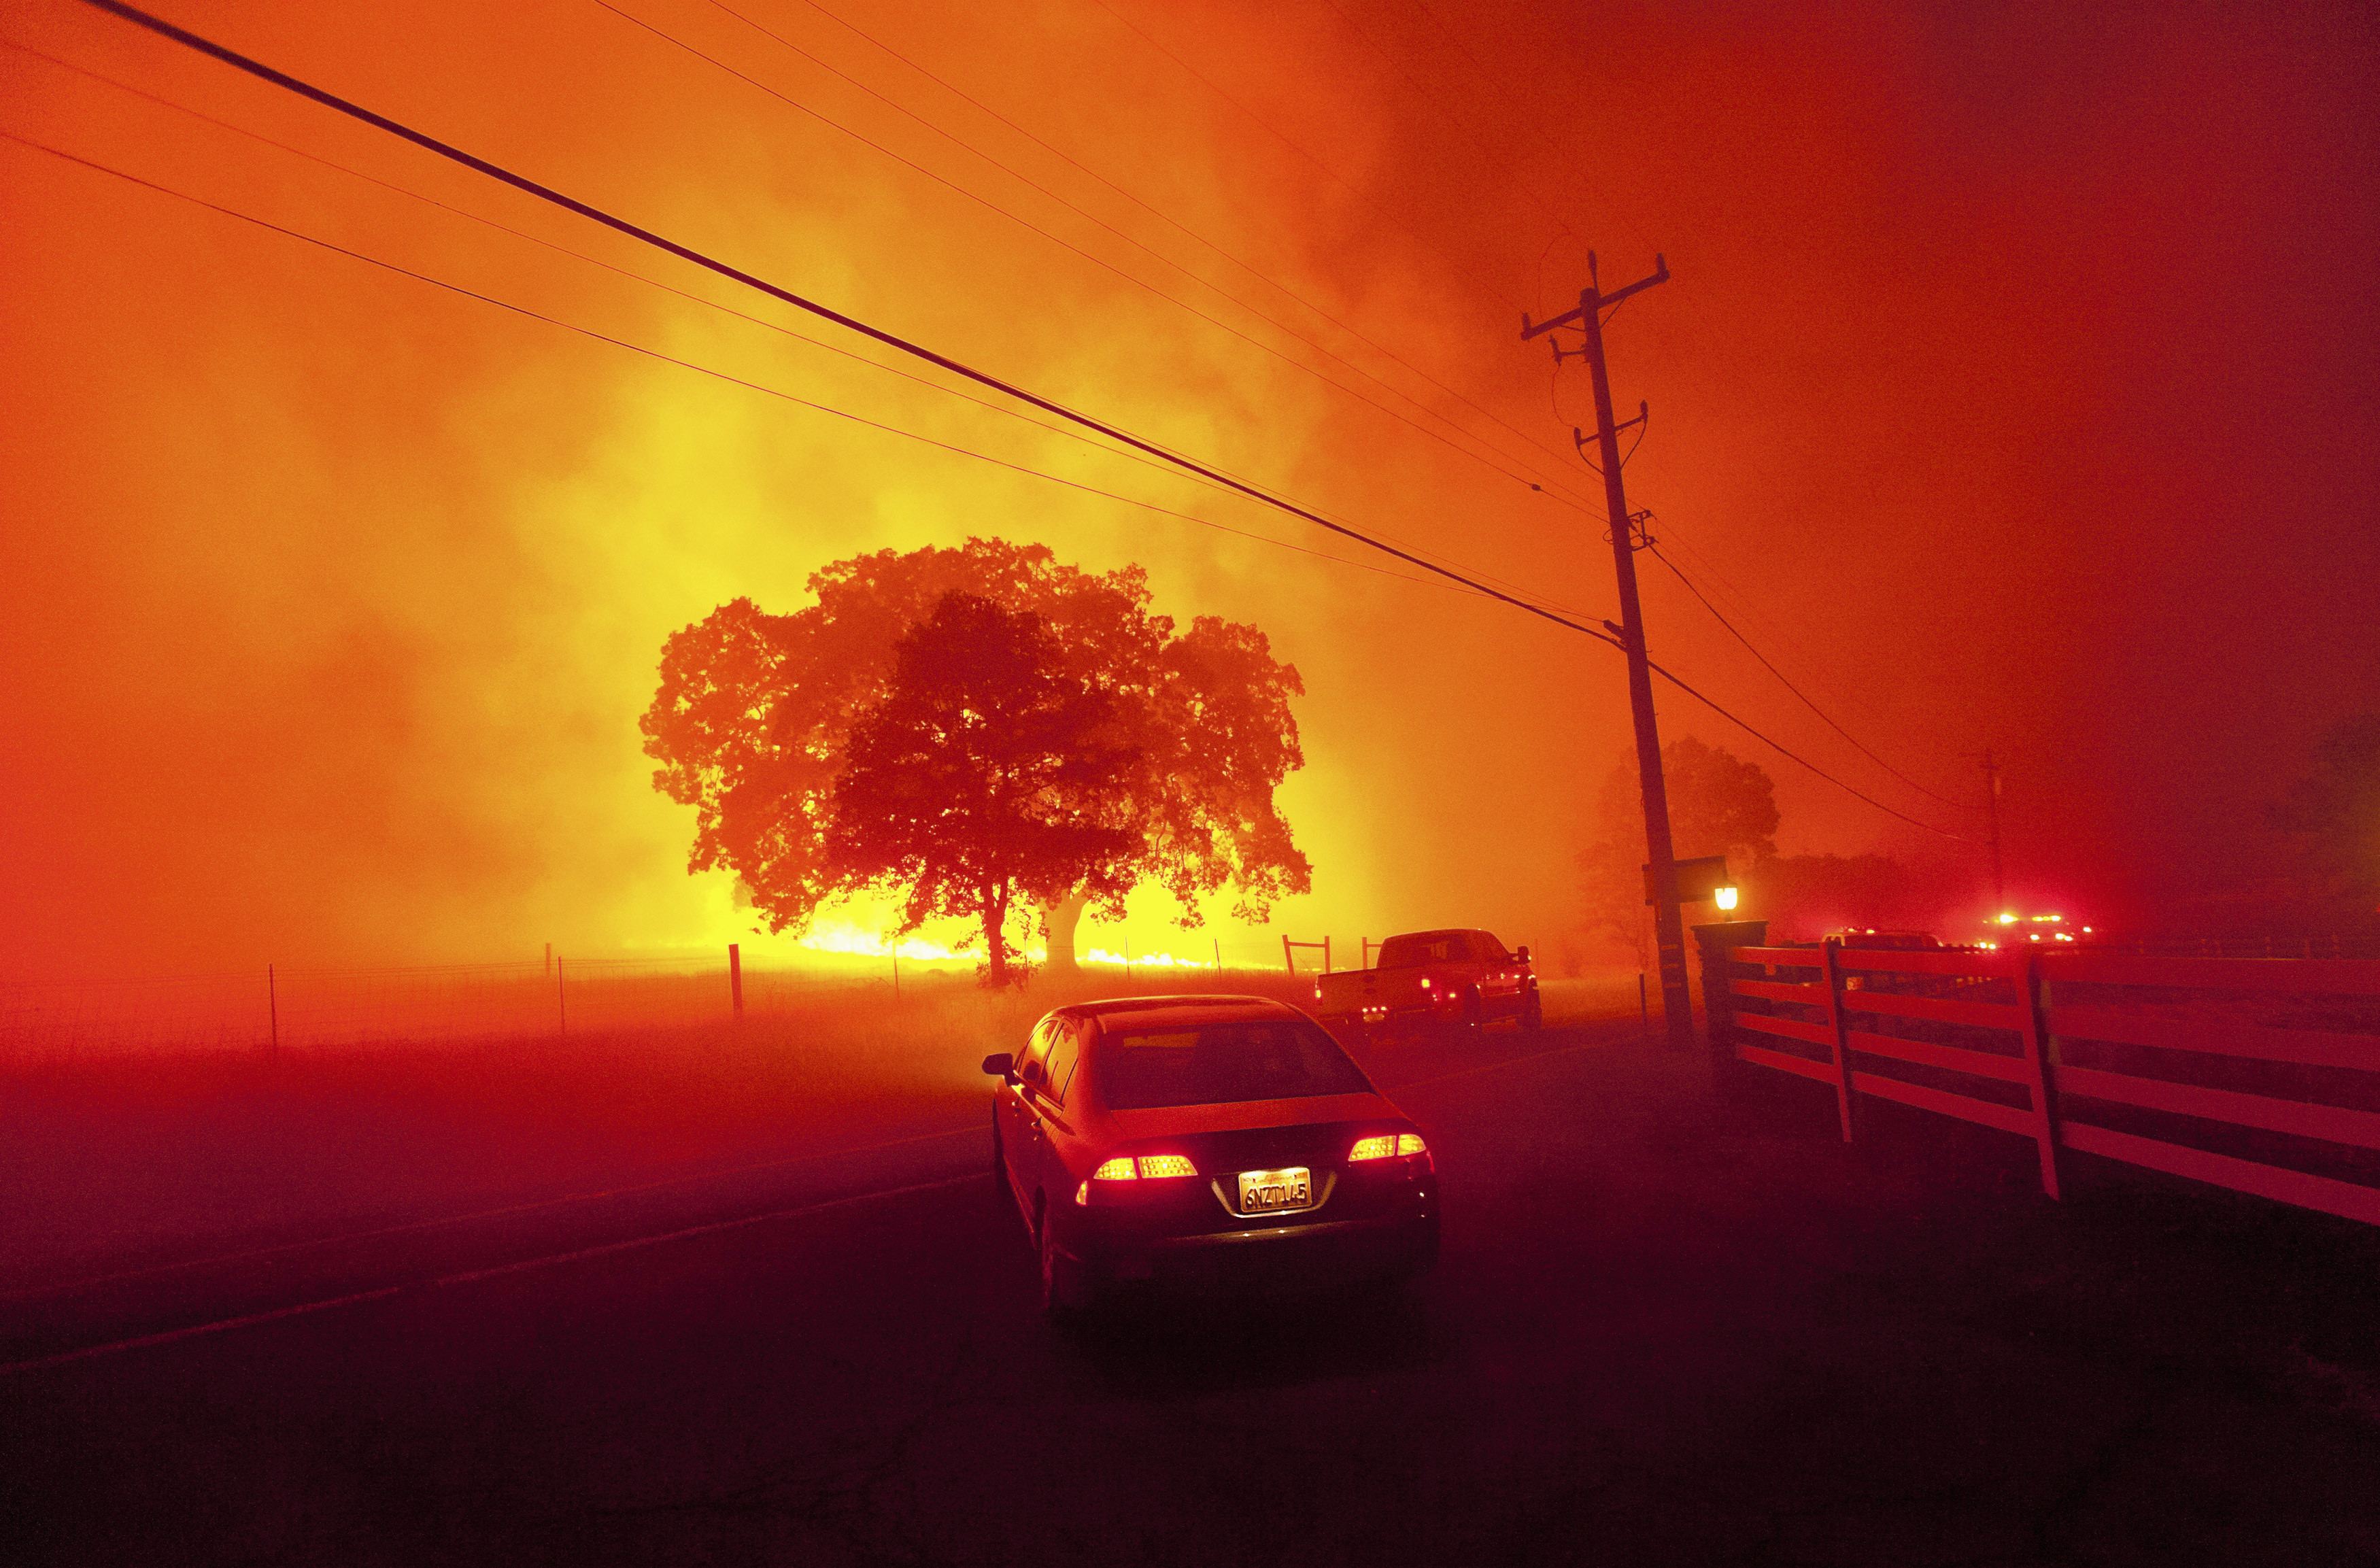 Residents flee as winds whip flames from the Morgan fire along Morgan Territory Road near Clayton, California in unincorporated Contra Costa County September 9, 2013. The blaze, burning in dense, dry scrub, grass and timber in and around Mount Diablo State Park, had scorched some 3,700 acres (1,500 hectares) by Monday afternoon, forcing the evacuation of about 100 homes at the edge of the town of Clayton. REUTERS/Noah Berger (UNITED STATES - Tags: DISASTER ENVIRONMENT SOCIETY TPX IMAGES OF THE DAY) - GM1E99A12F301